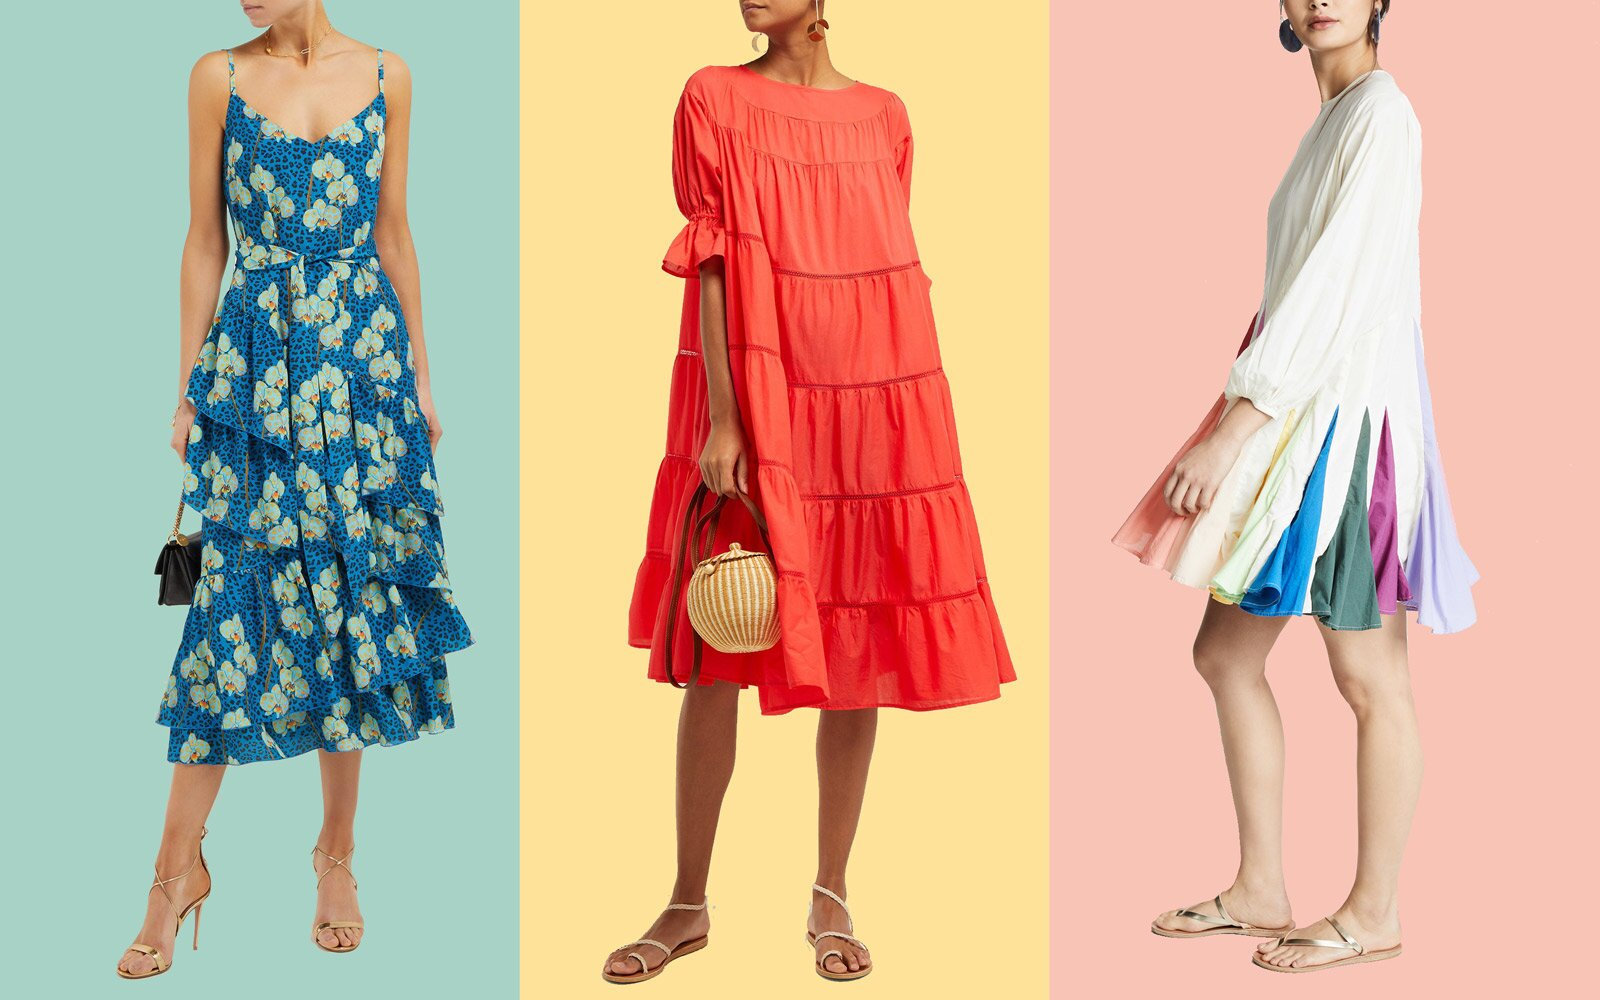 ae2ddaa1948 12 Brands That Make the Perfect Breezy Spring Dresses